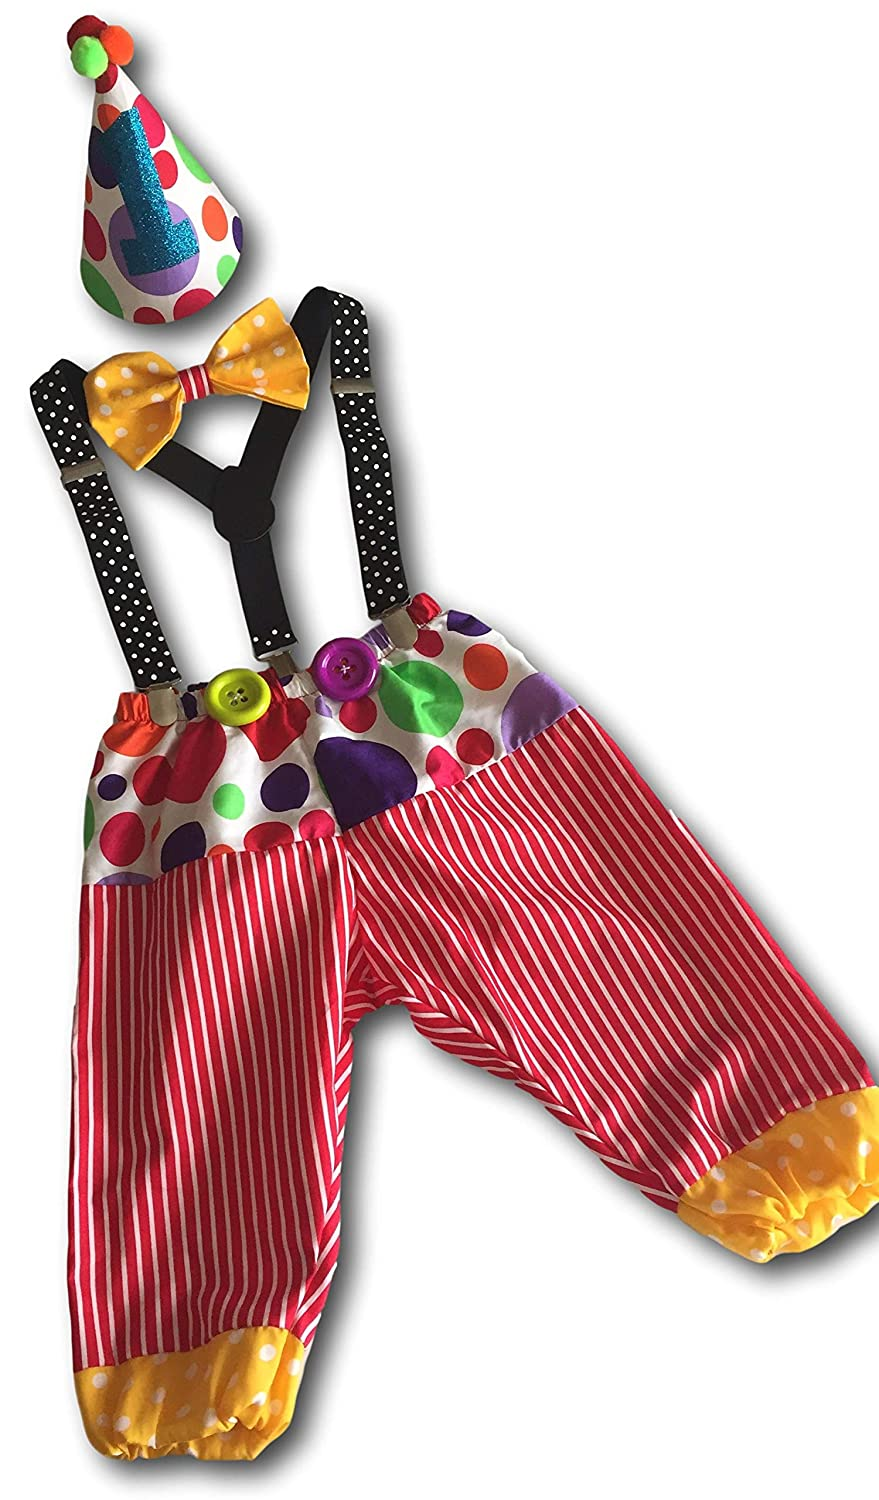 Clown 1st Birthday Cake Smash for Boys Baby Outfit Cheap super special price It is very popular